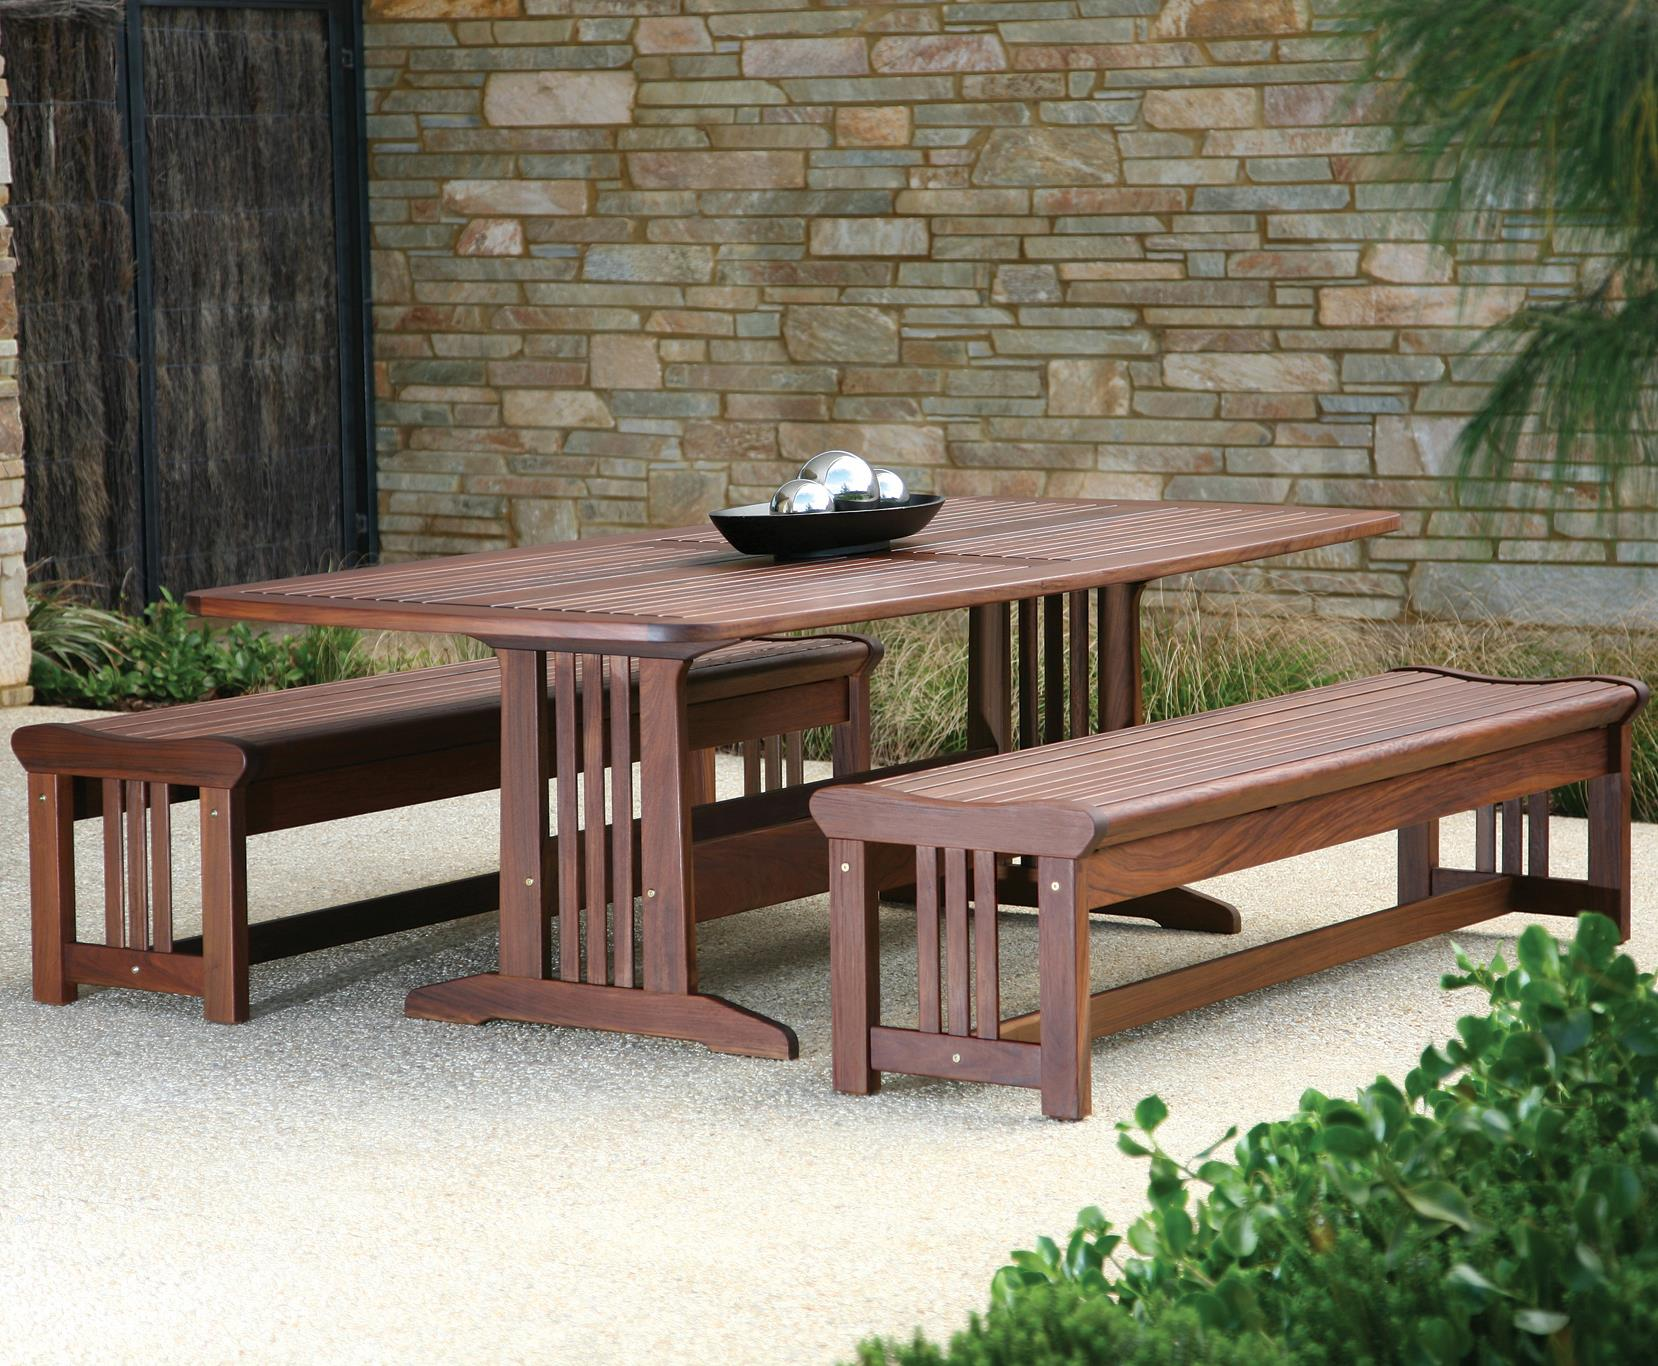 Governor Dining Dining Set with Benches by Jensen Leisure at Malouf Furniture Co.